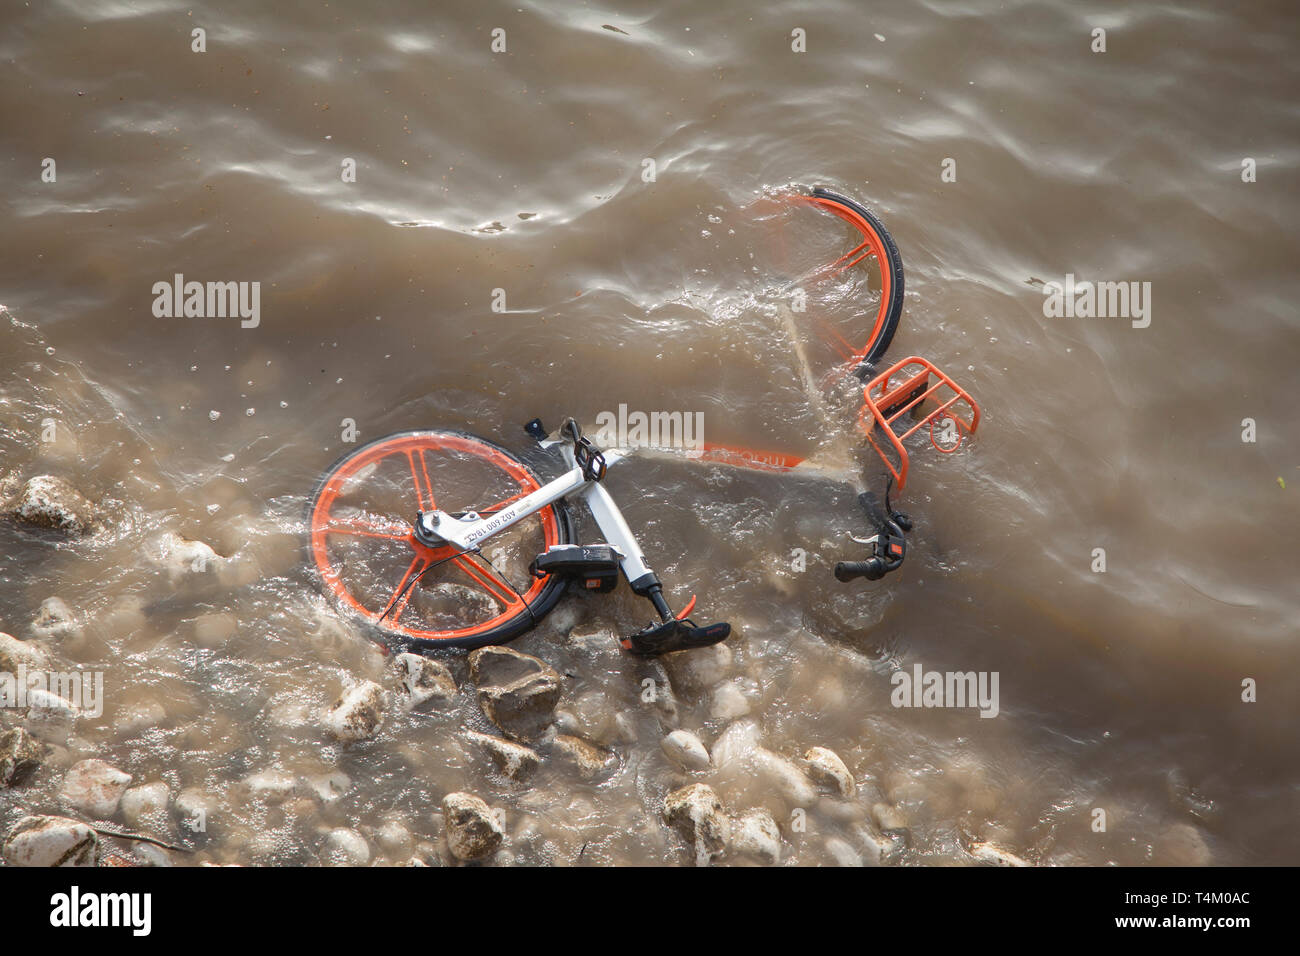 River water laps over a discarded Mobike hire bike on the shoreline thrown into the River Thames by vandals near Westminster Bridge - Stock Image